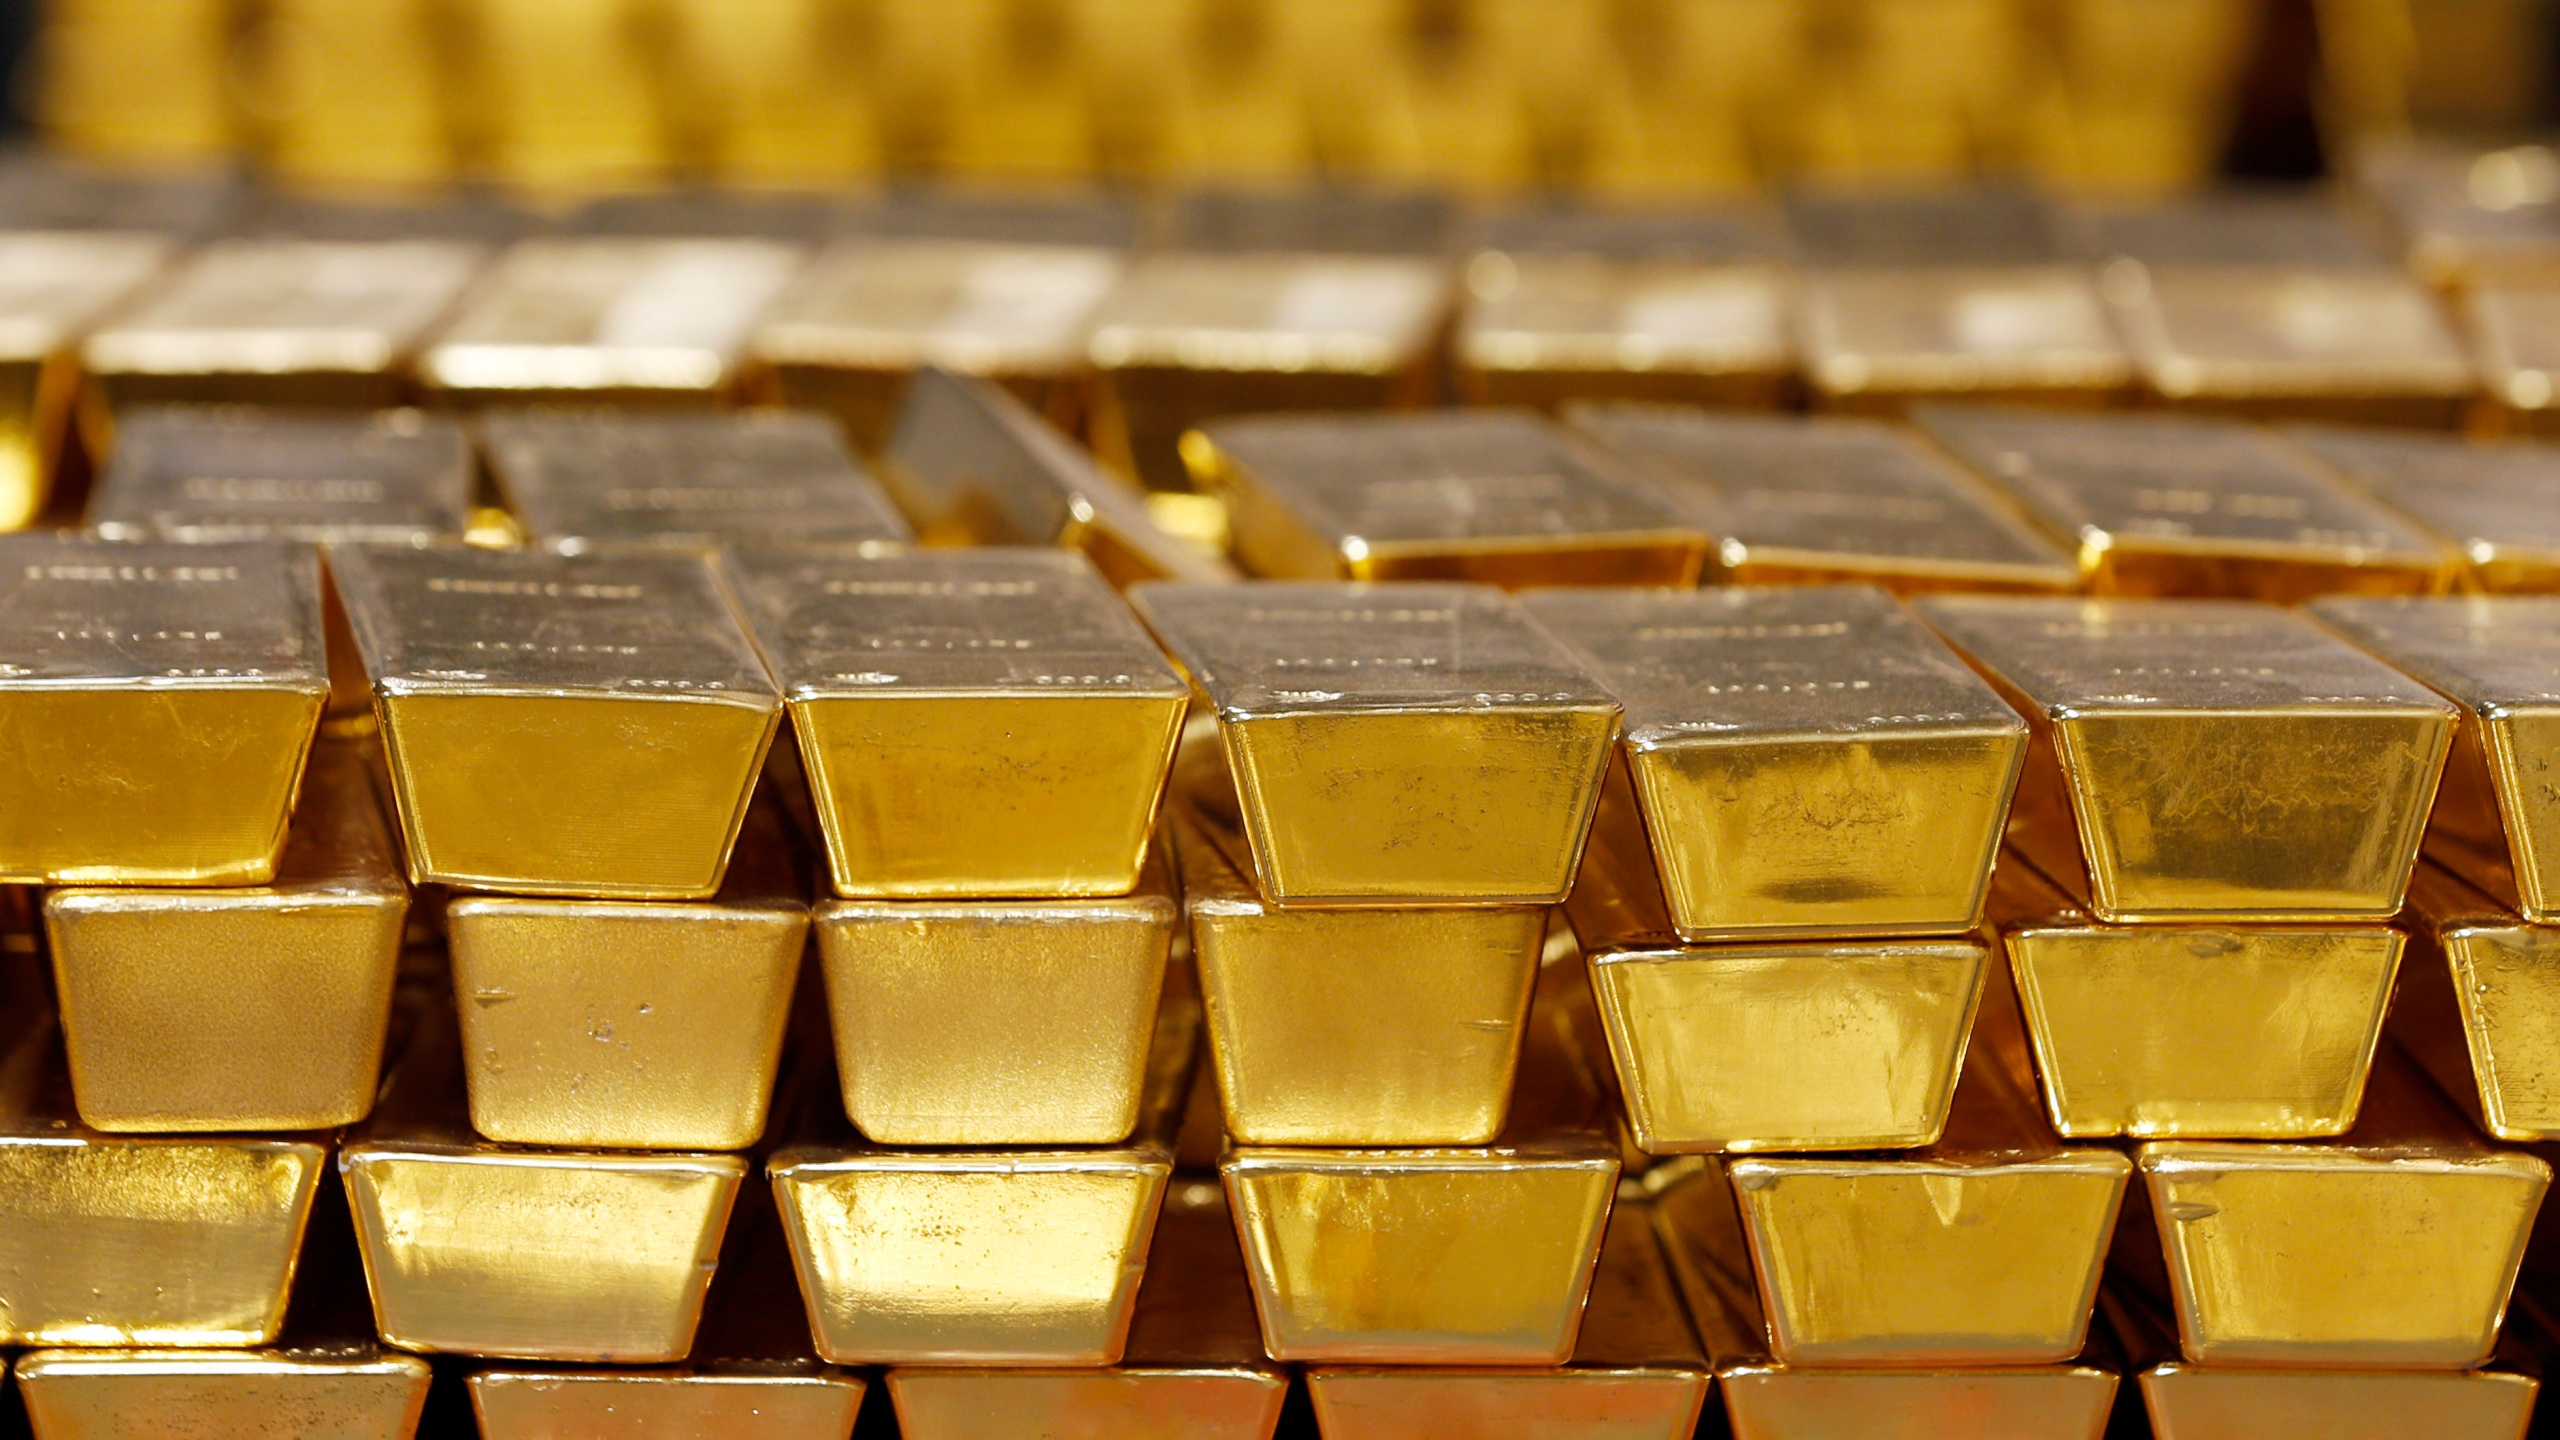 Armed Men Steal Gold Silver Bars From